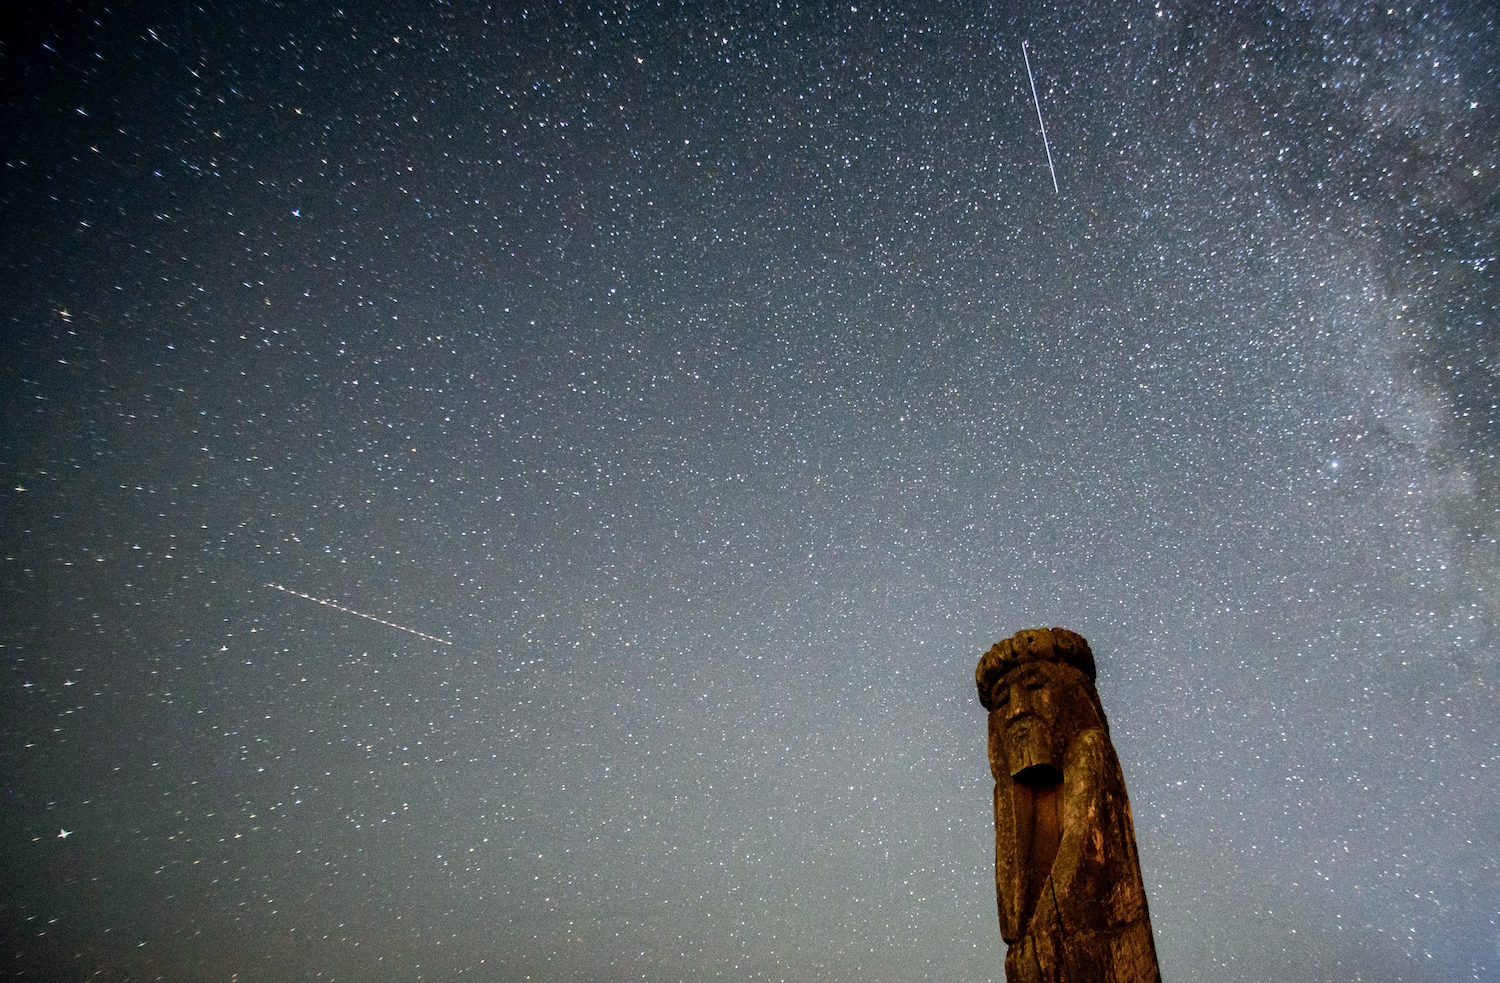 Shooting stars cross the night sky over a wooden idol near the village of Ptich some 25km away from Minsk, during the peak of the annual Perseid meteor shower on August 15, 2015. The Perseid meteor shower occurs every year when the earth passes through the cloud of debris left by Comet Swift-Tuttle. The showers are named after the constellation of Perseus, the hero from Greek mythology who beheaded the snake-headed Medusa to save the princess Andromeda. AFP PHOTO / SERGEY BALAY